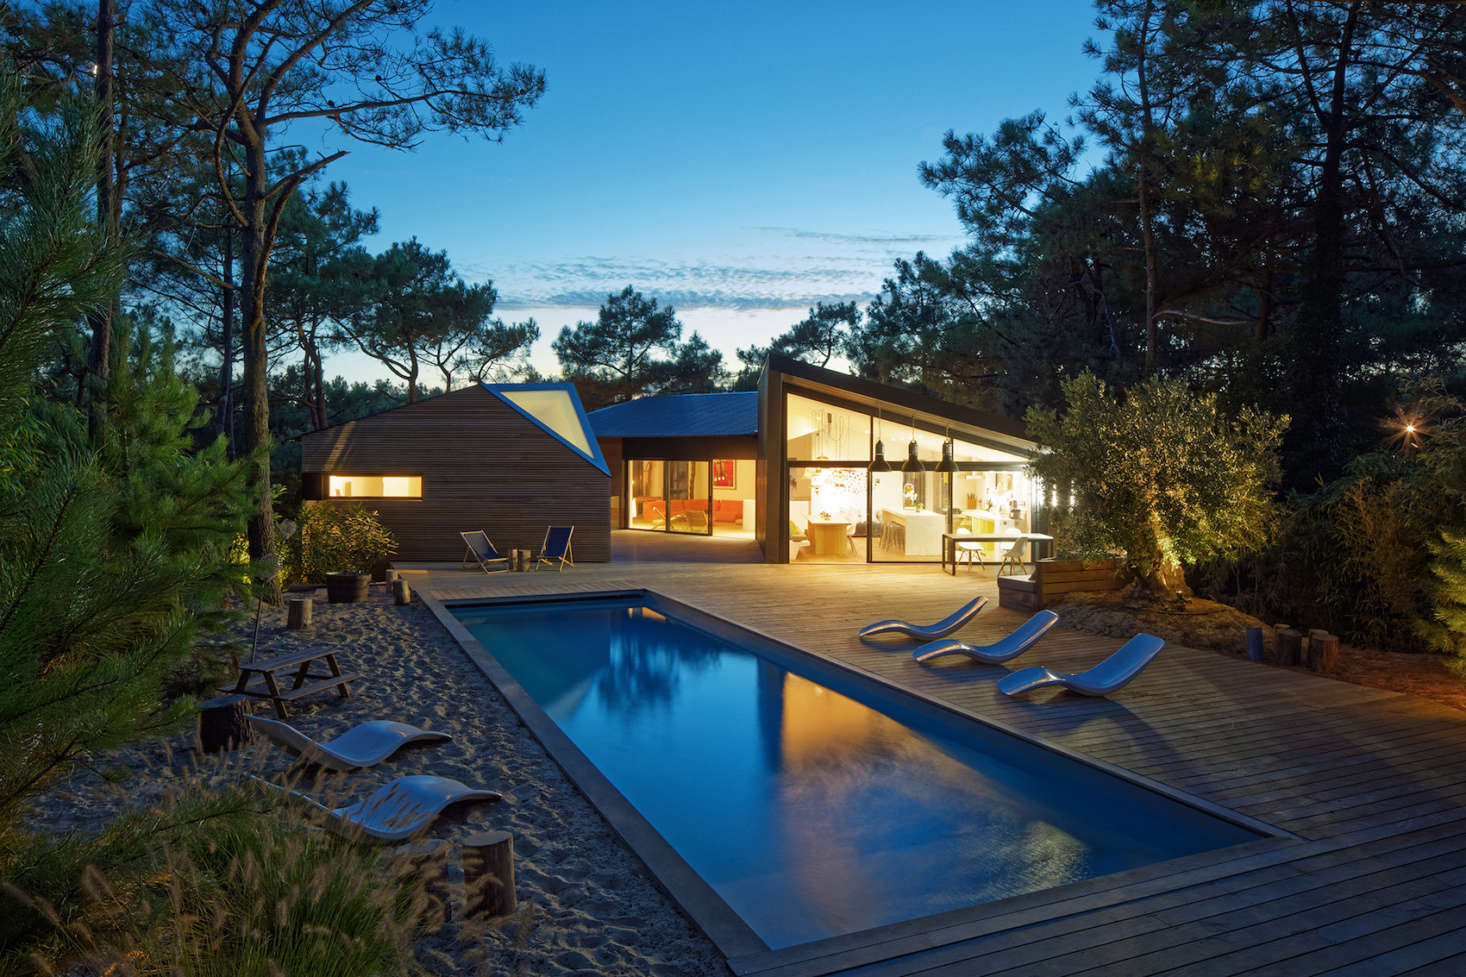 At night, a lantern-like glow from the house illuminates the pool and deck.